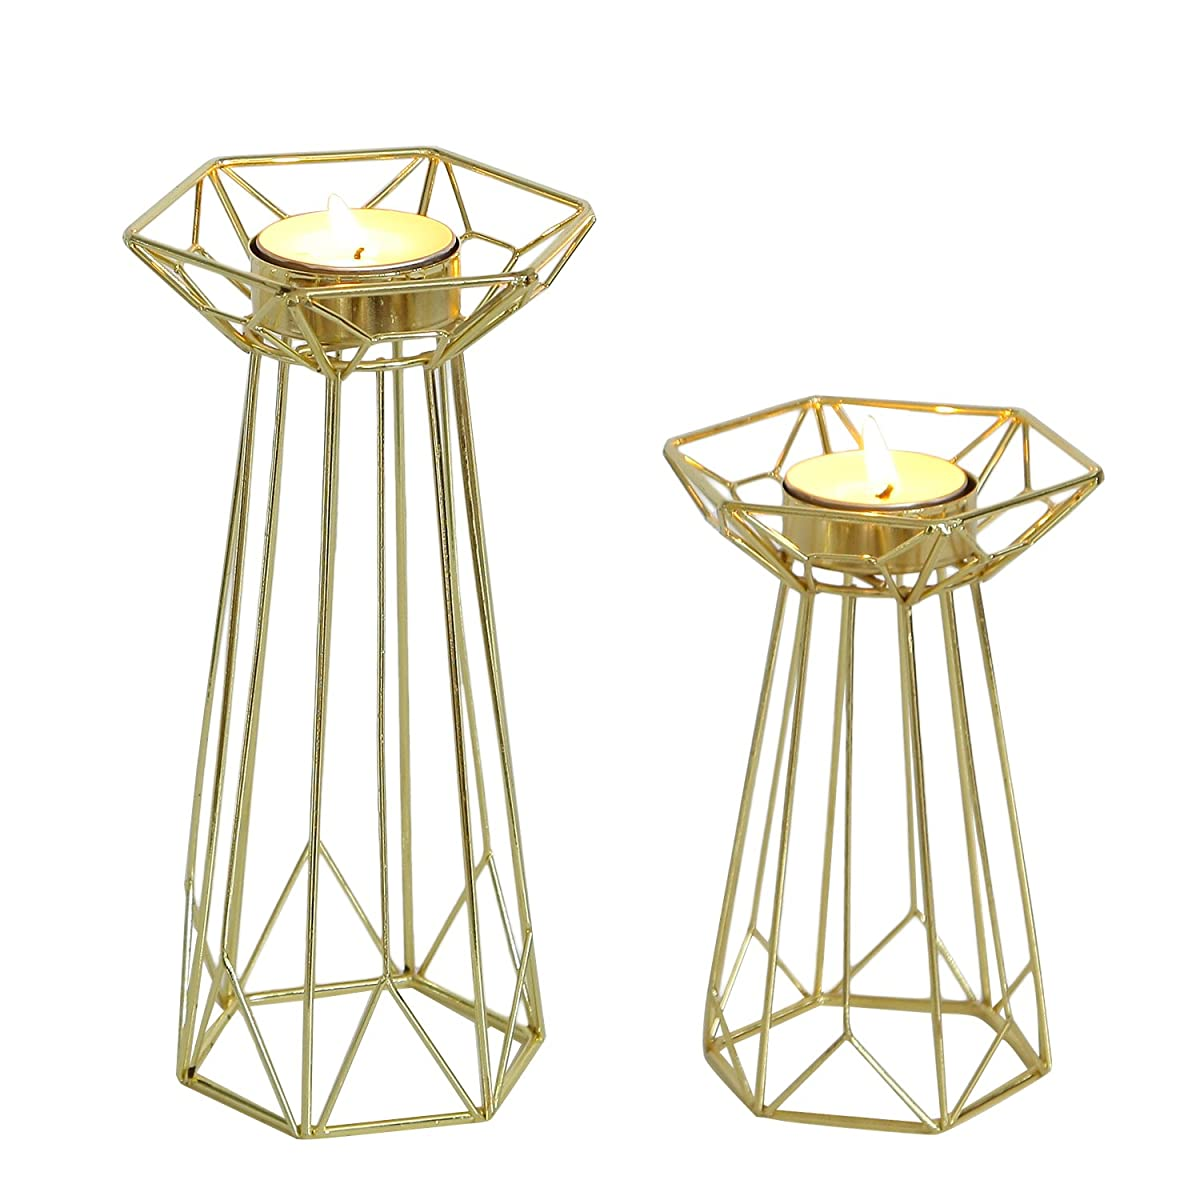 Adeco Decorative Standing Tealight Candle Holder - Golden Metal - Home Decor - Set of 2